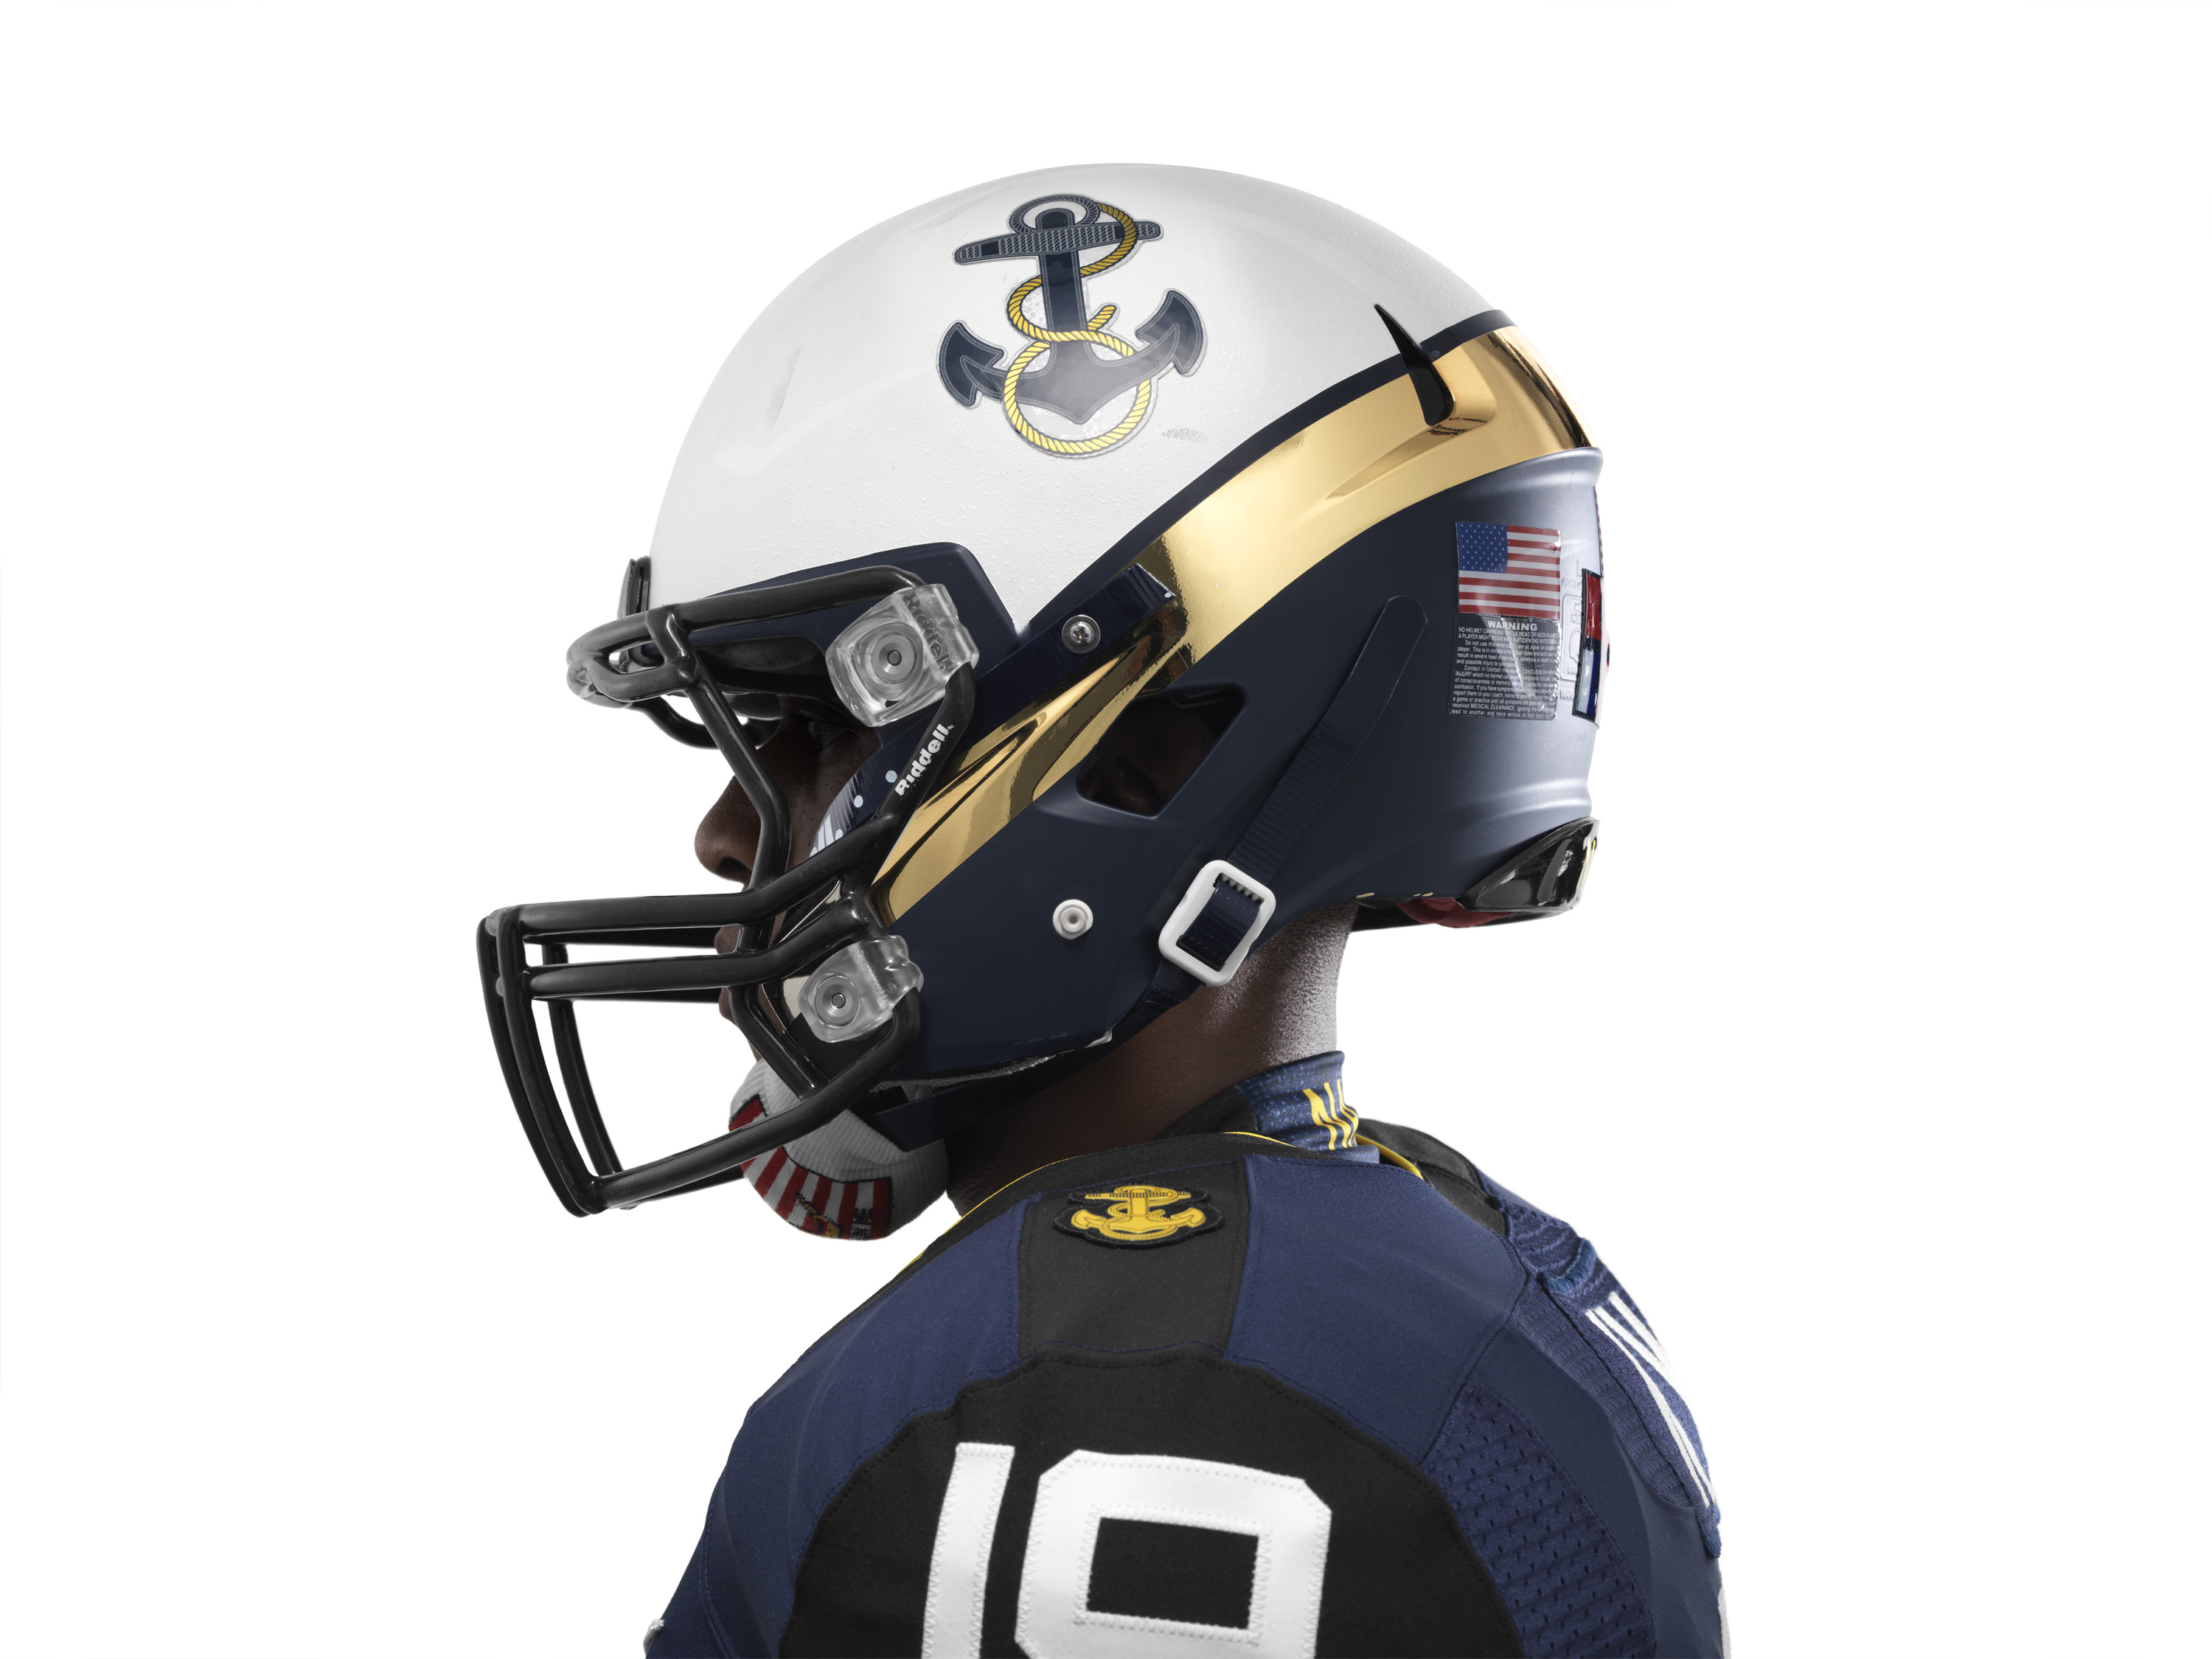 ncaa_fb13_uniforms_navy_helmet_profile_base_0000-copy.jpg